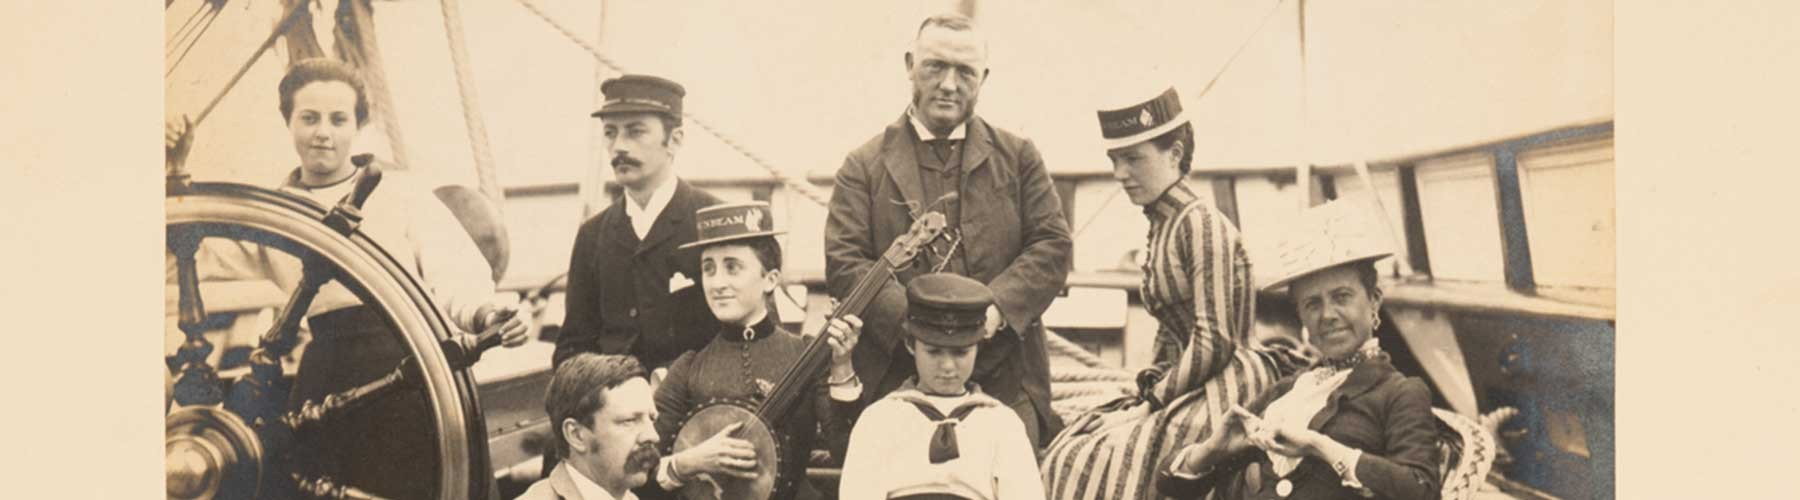 b/w photo of men and women on a ship deck with a banjo